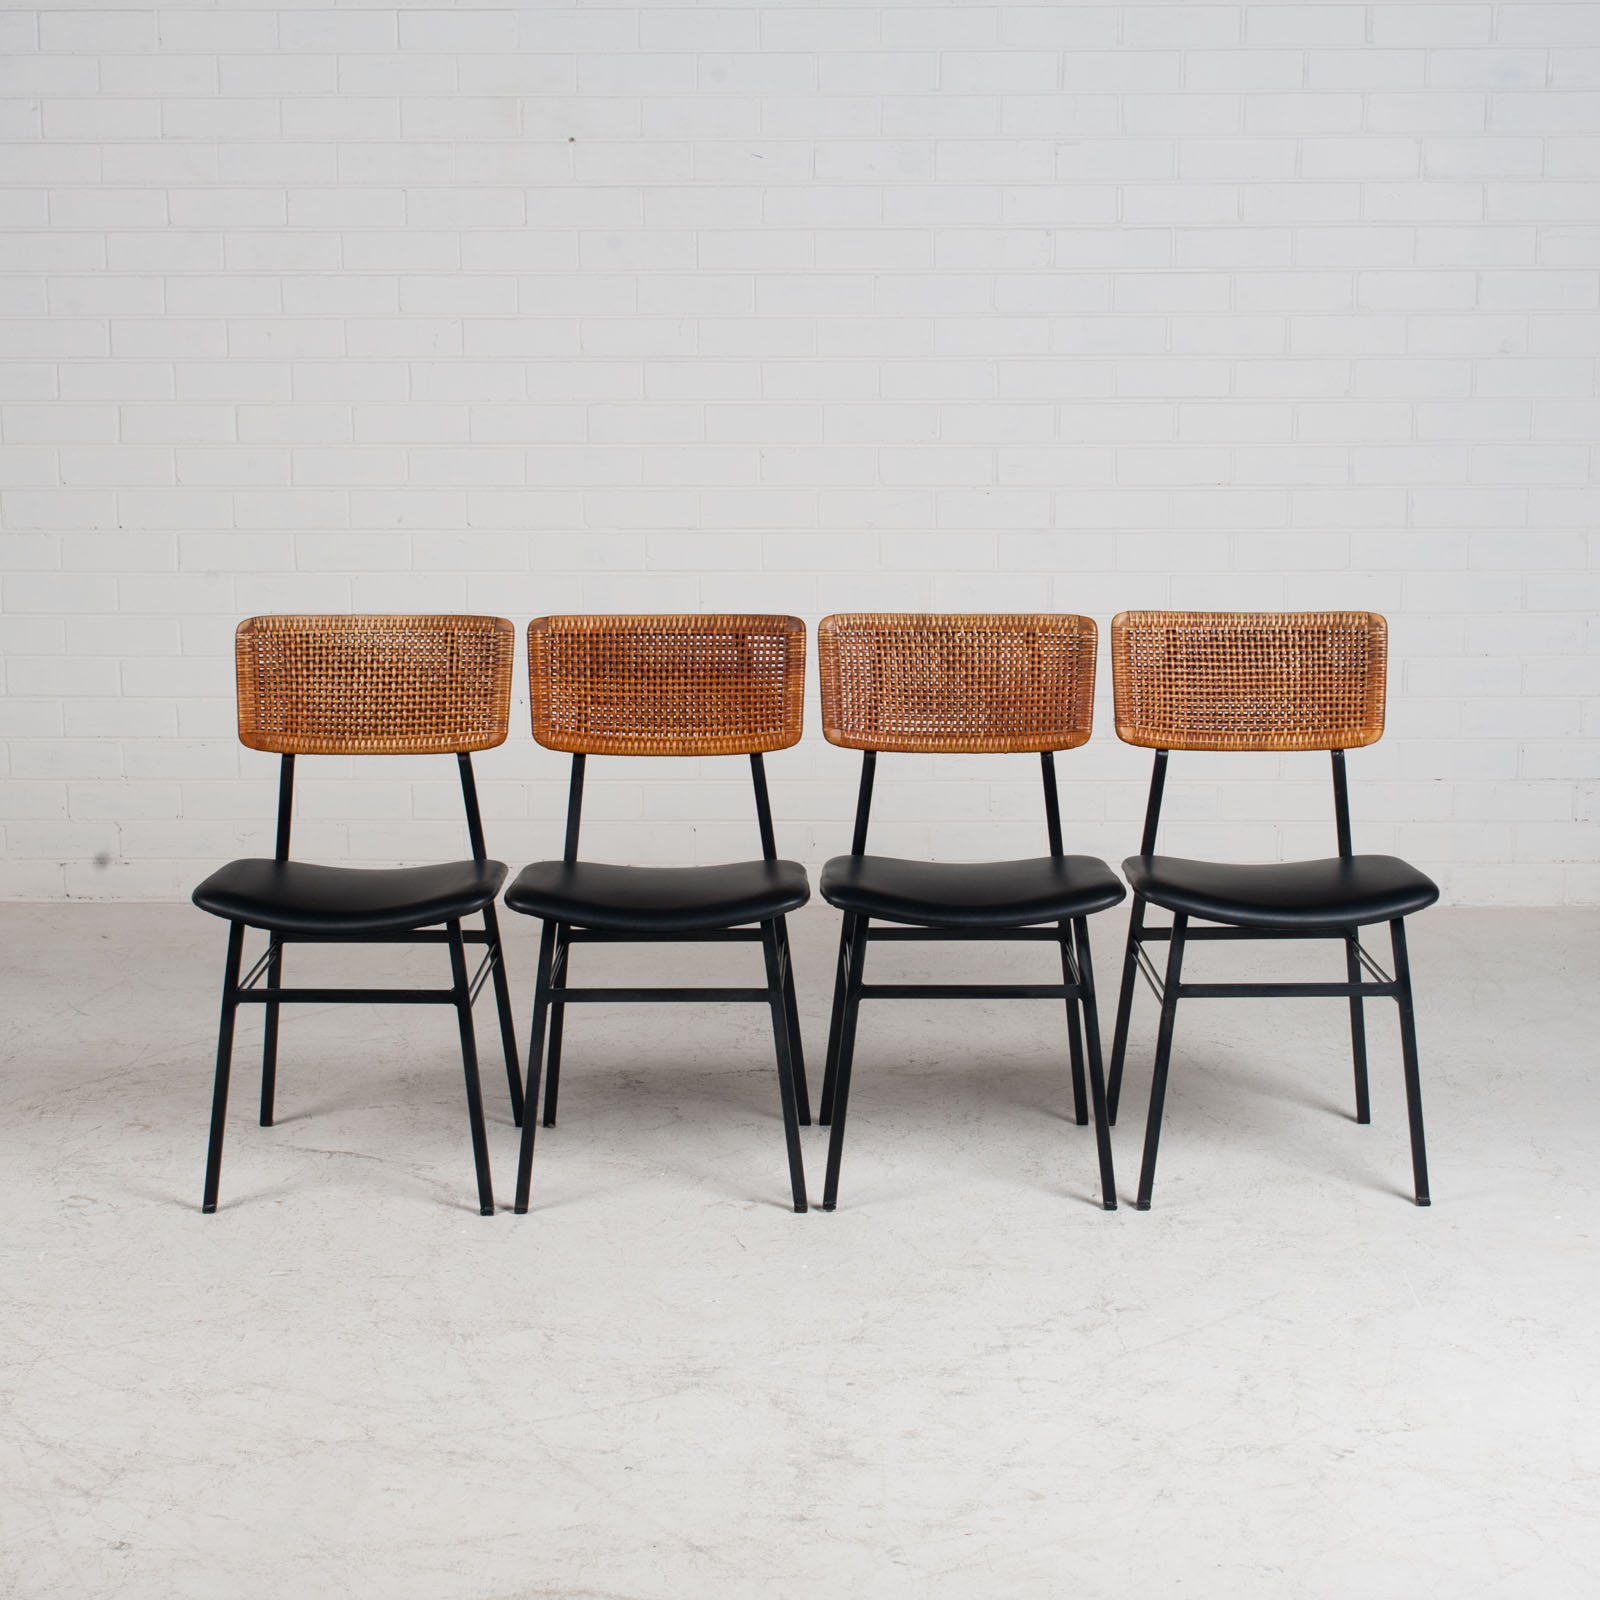 Set Of 4 Dining Chairs By Rohe In Rattan And Original Vinyl 1960s Denmark 12